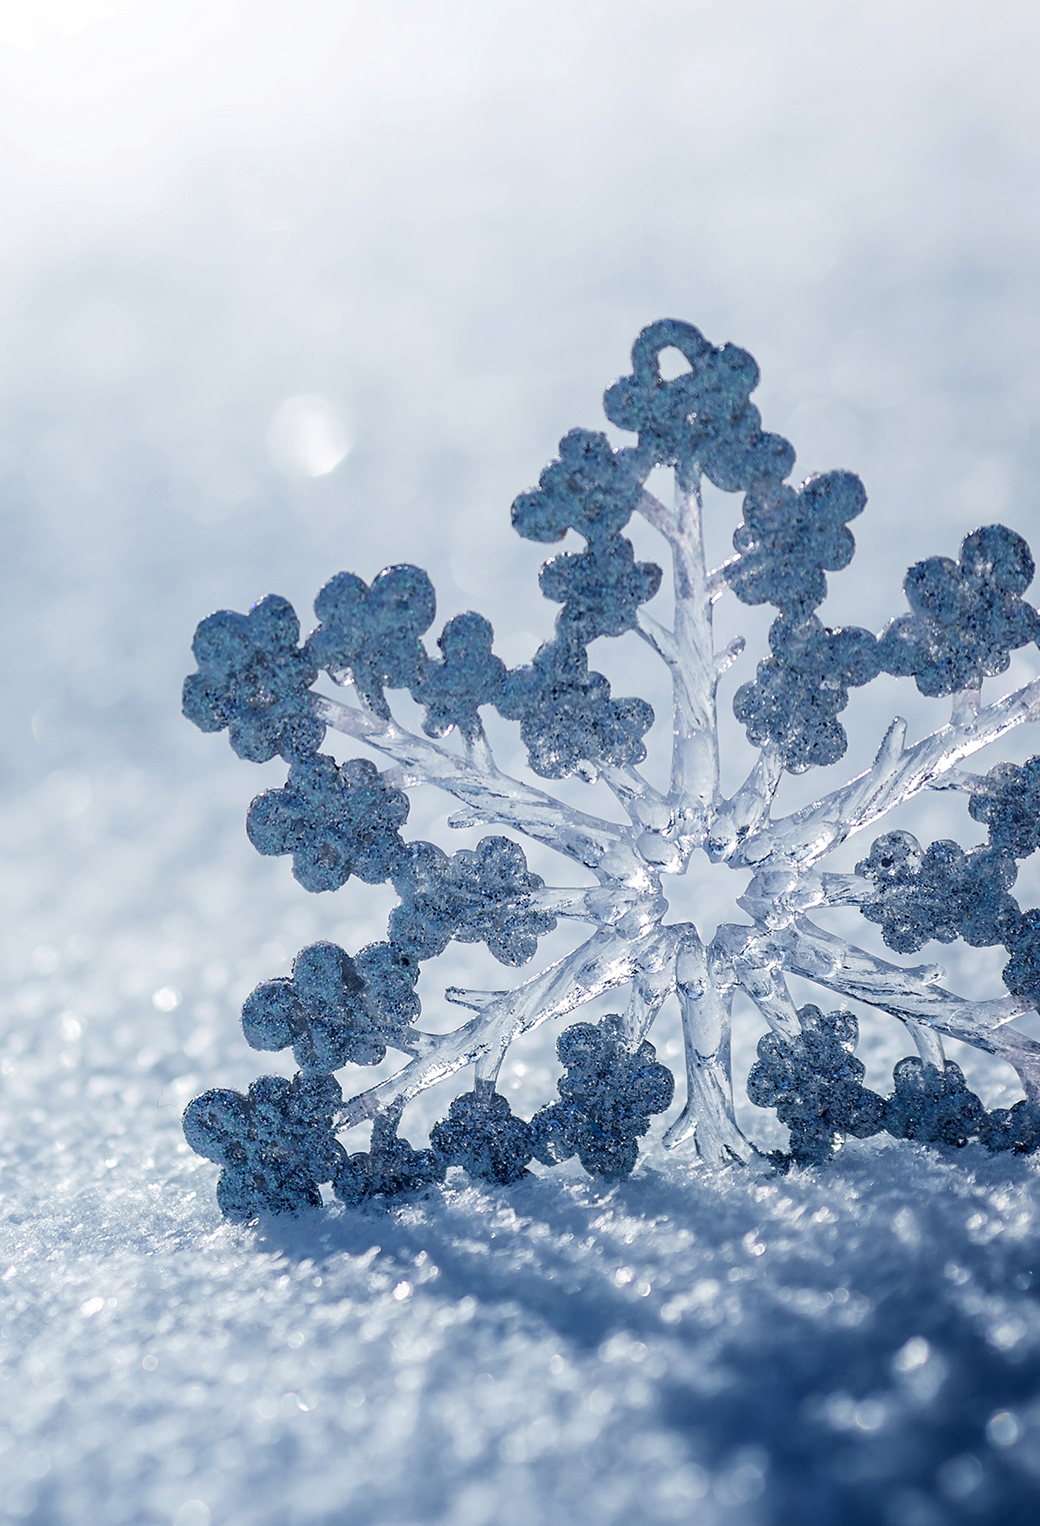 Ice Snowflake 3Wallpapers iPhone Parallax Ice Snowflake